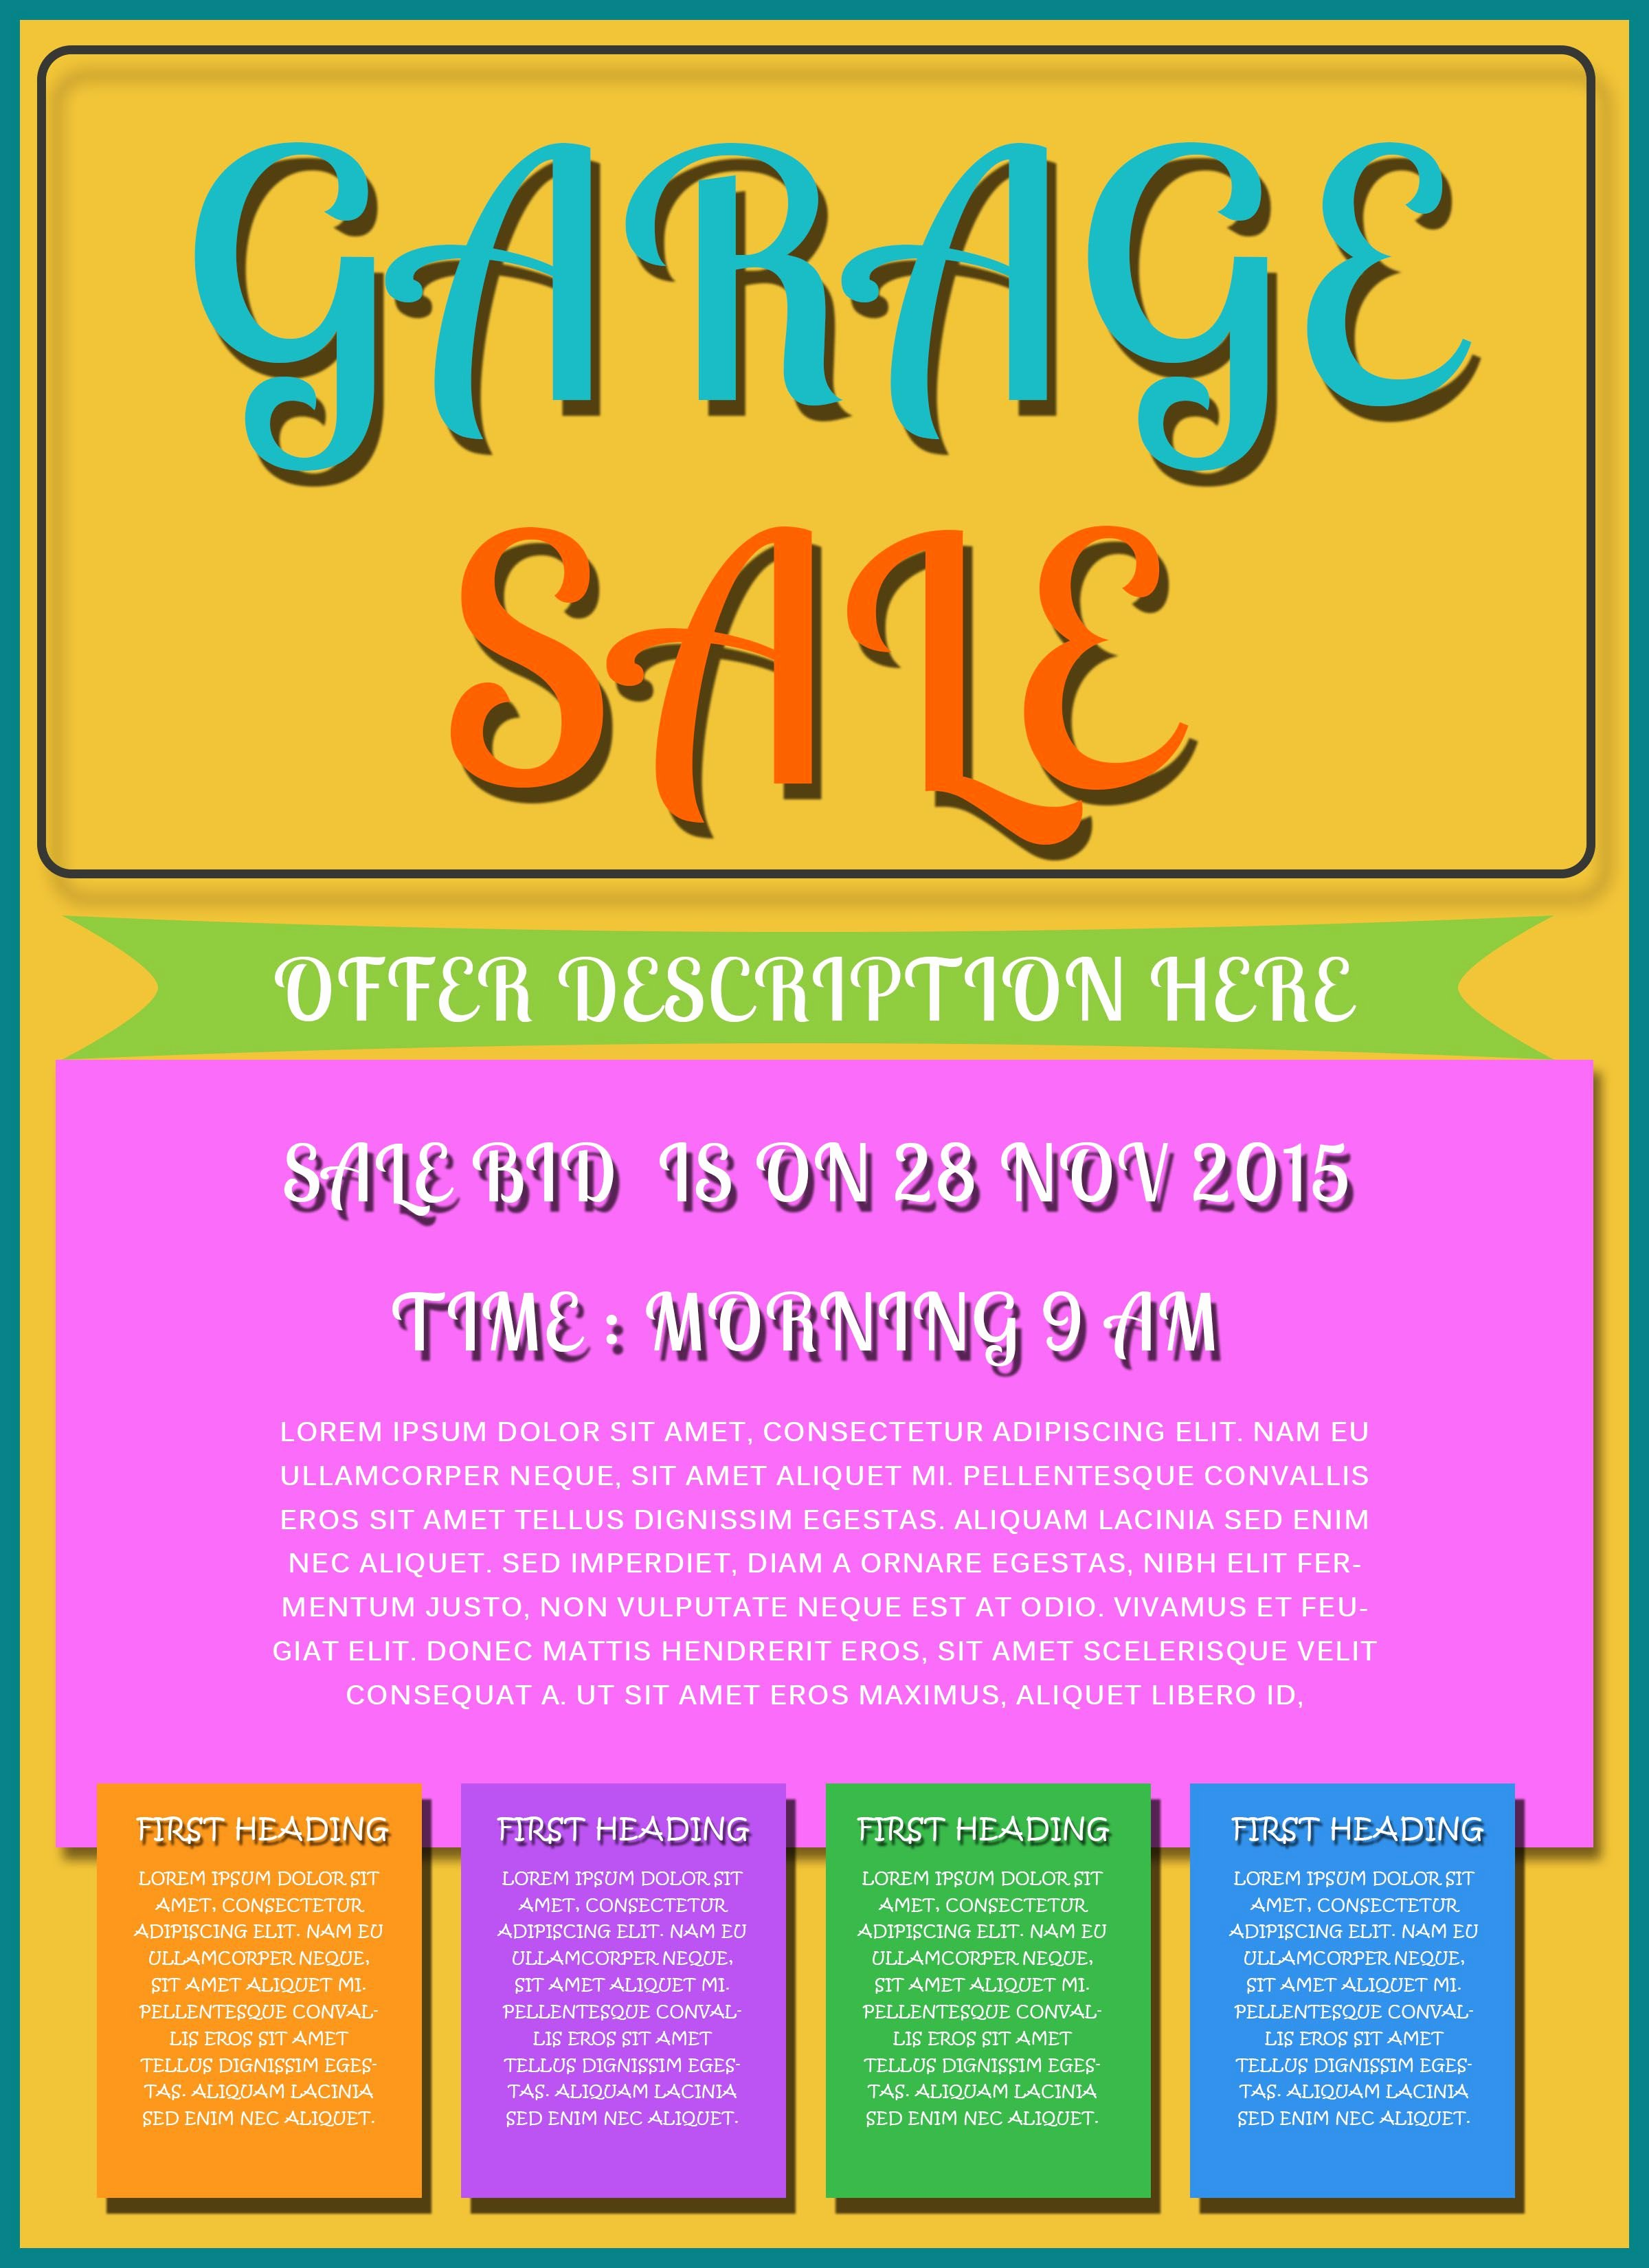 For Sale Flyer Template Inspirational Free Printable Garage Sale Flyers Templates attract More